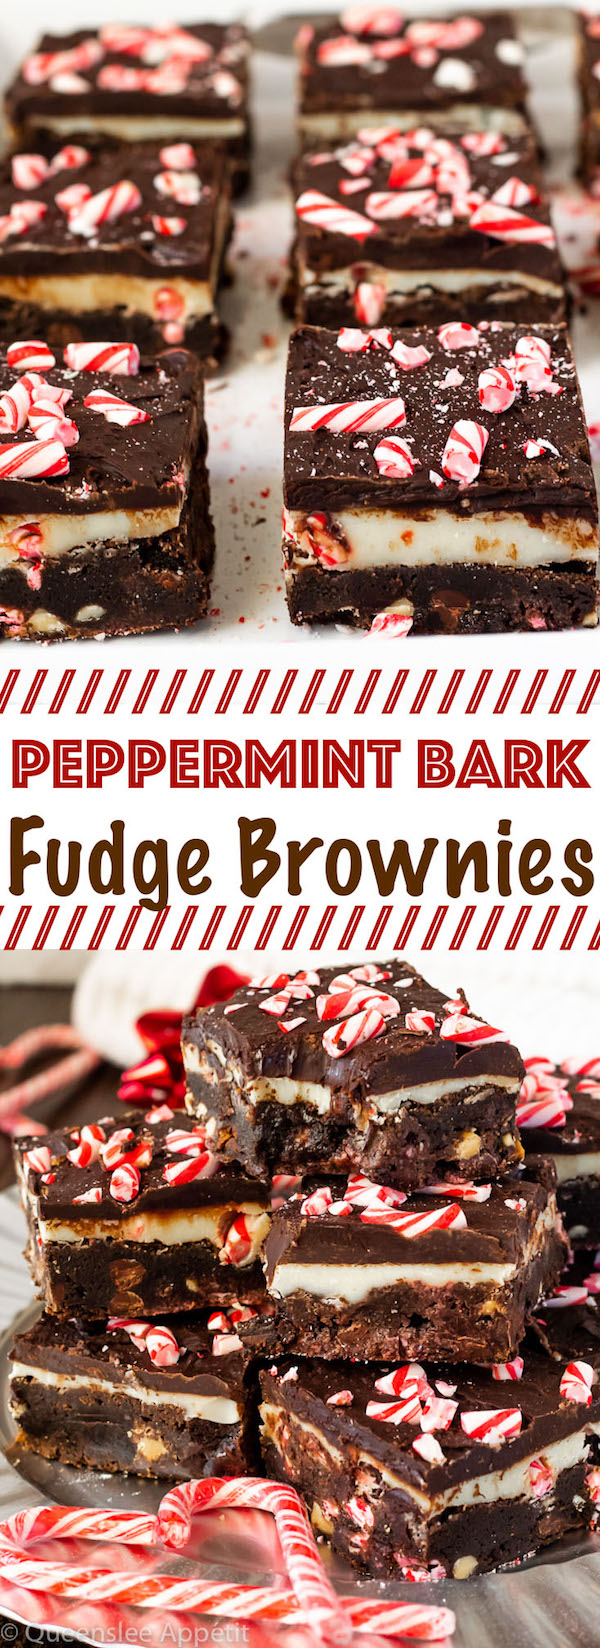 These Peppermint Bark Fudge Brownies start with a super fudgy and decadent peppermint brownie that's stuffed with white and dark chocolate chips and crushed candy canes. Top it off with a melt-in-your-mouth white and dark chocolate peppermint fudge for a fun and delicious Christmas treat!